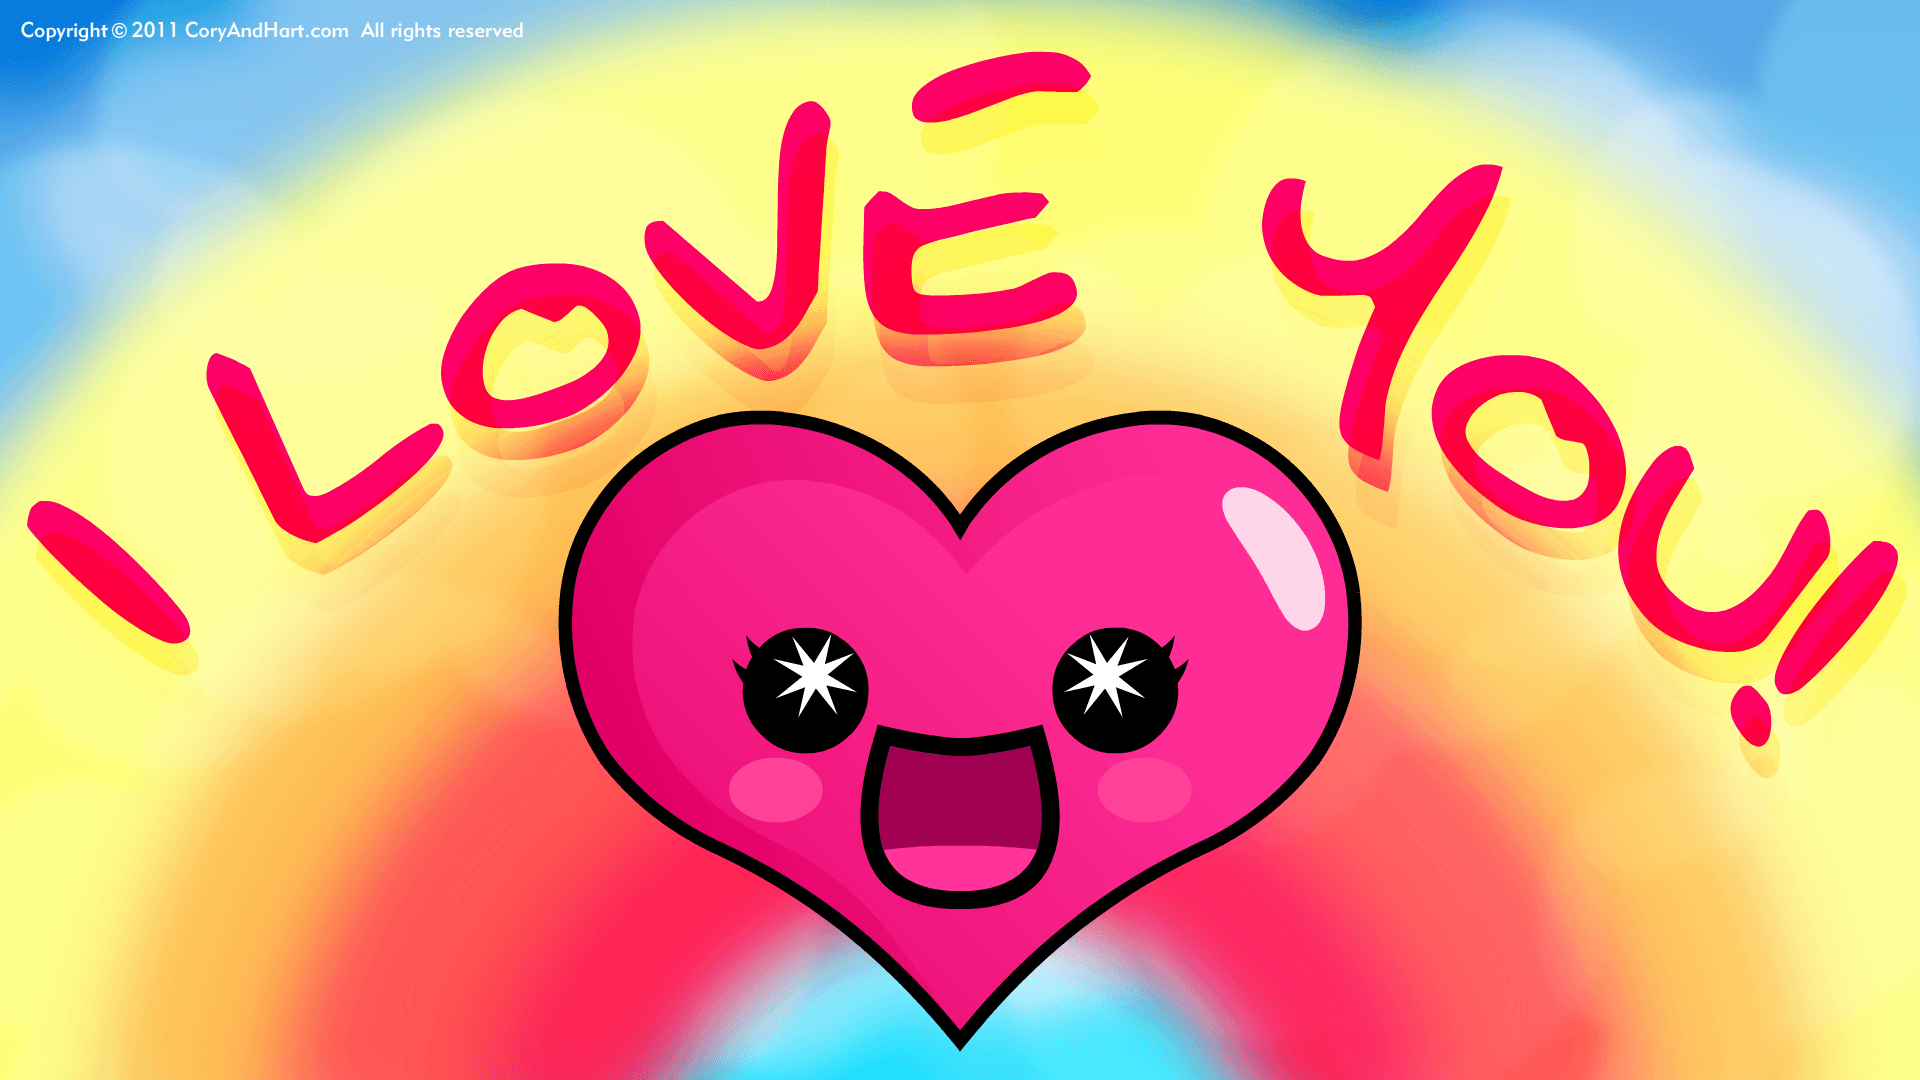 Some cute Love Wallpaper : cute I Love You Wallpapers - Wallpaper cave